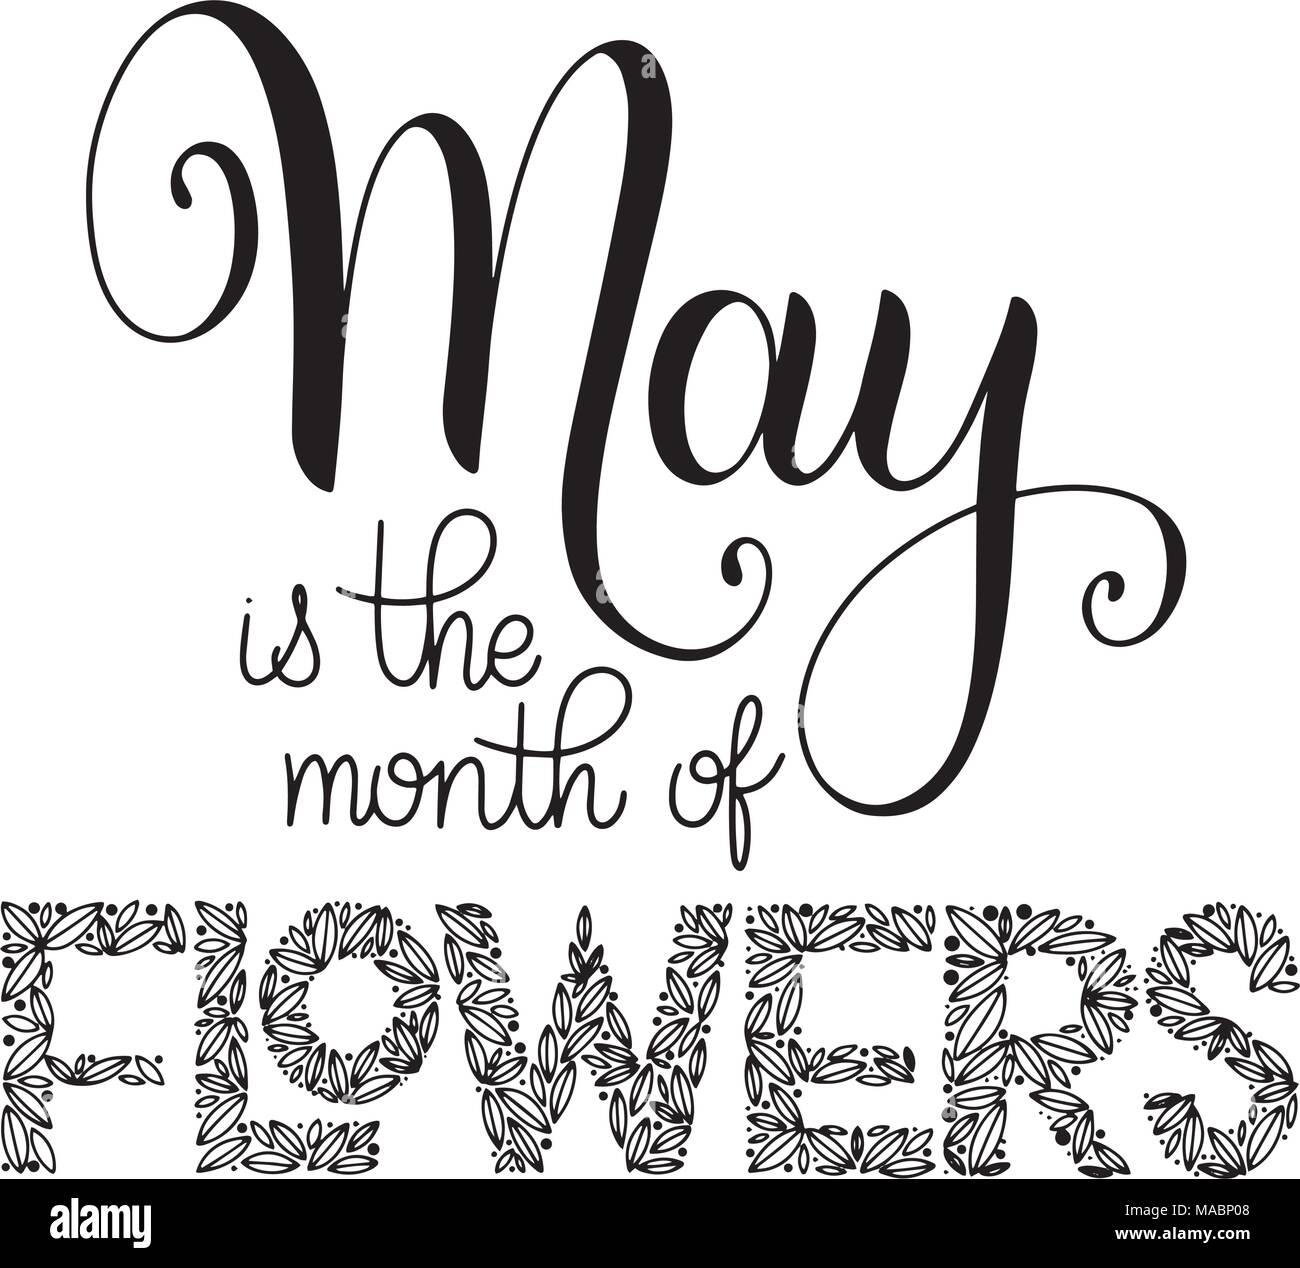 May Is The Month Of Flowers Lettering Elements For Invitations